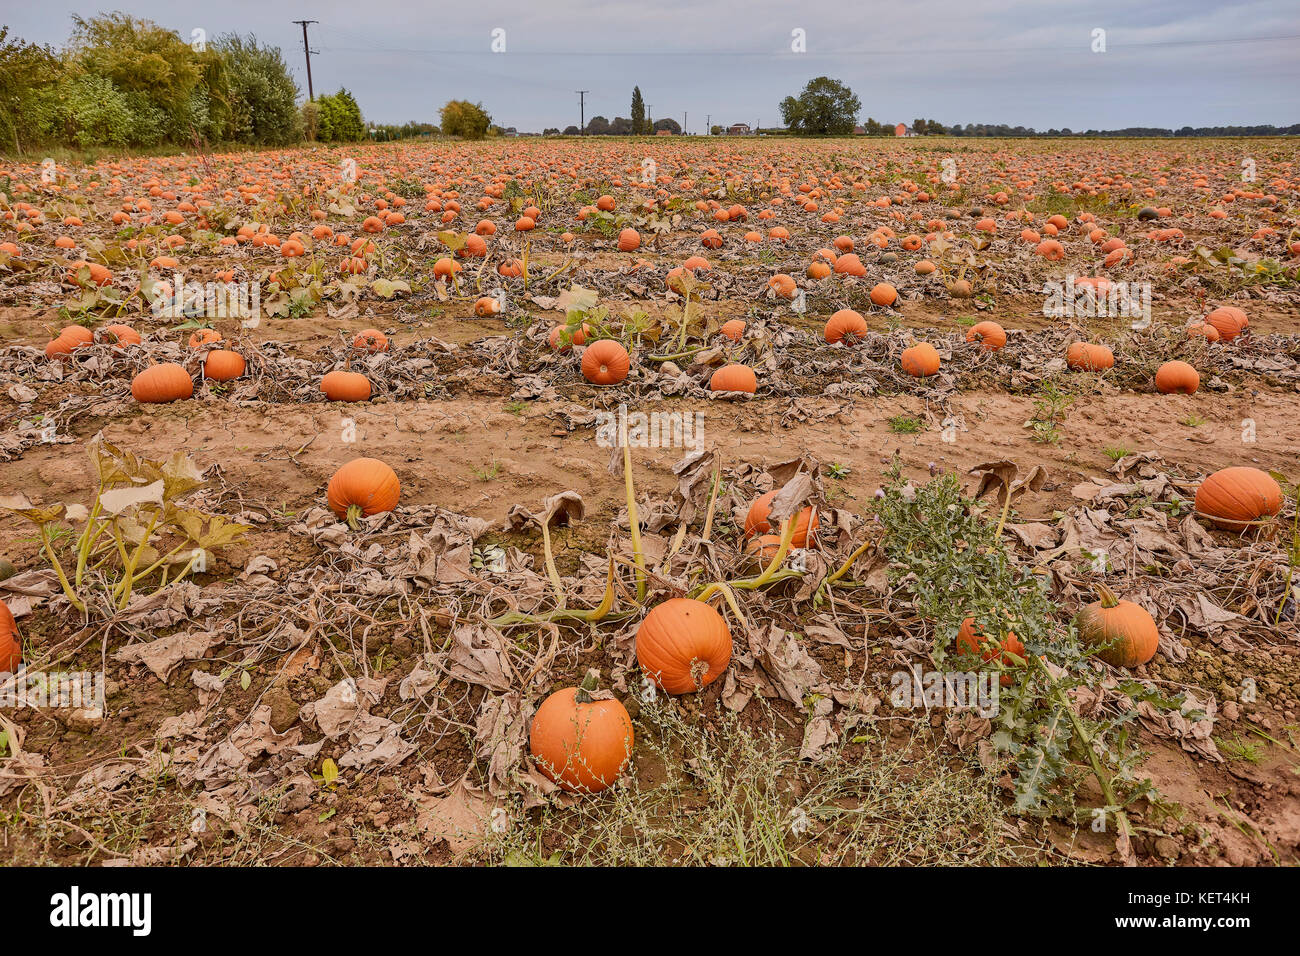 Bennington Lincolnshire, UK, October 2017, Pumpkins growing in a field - Stock Image